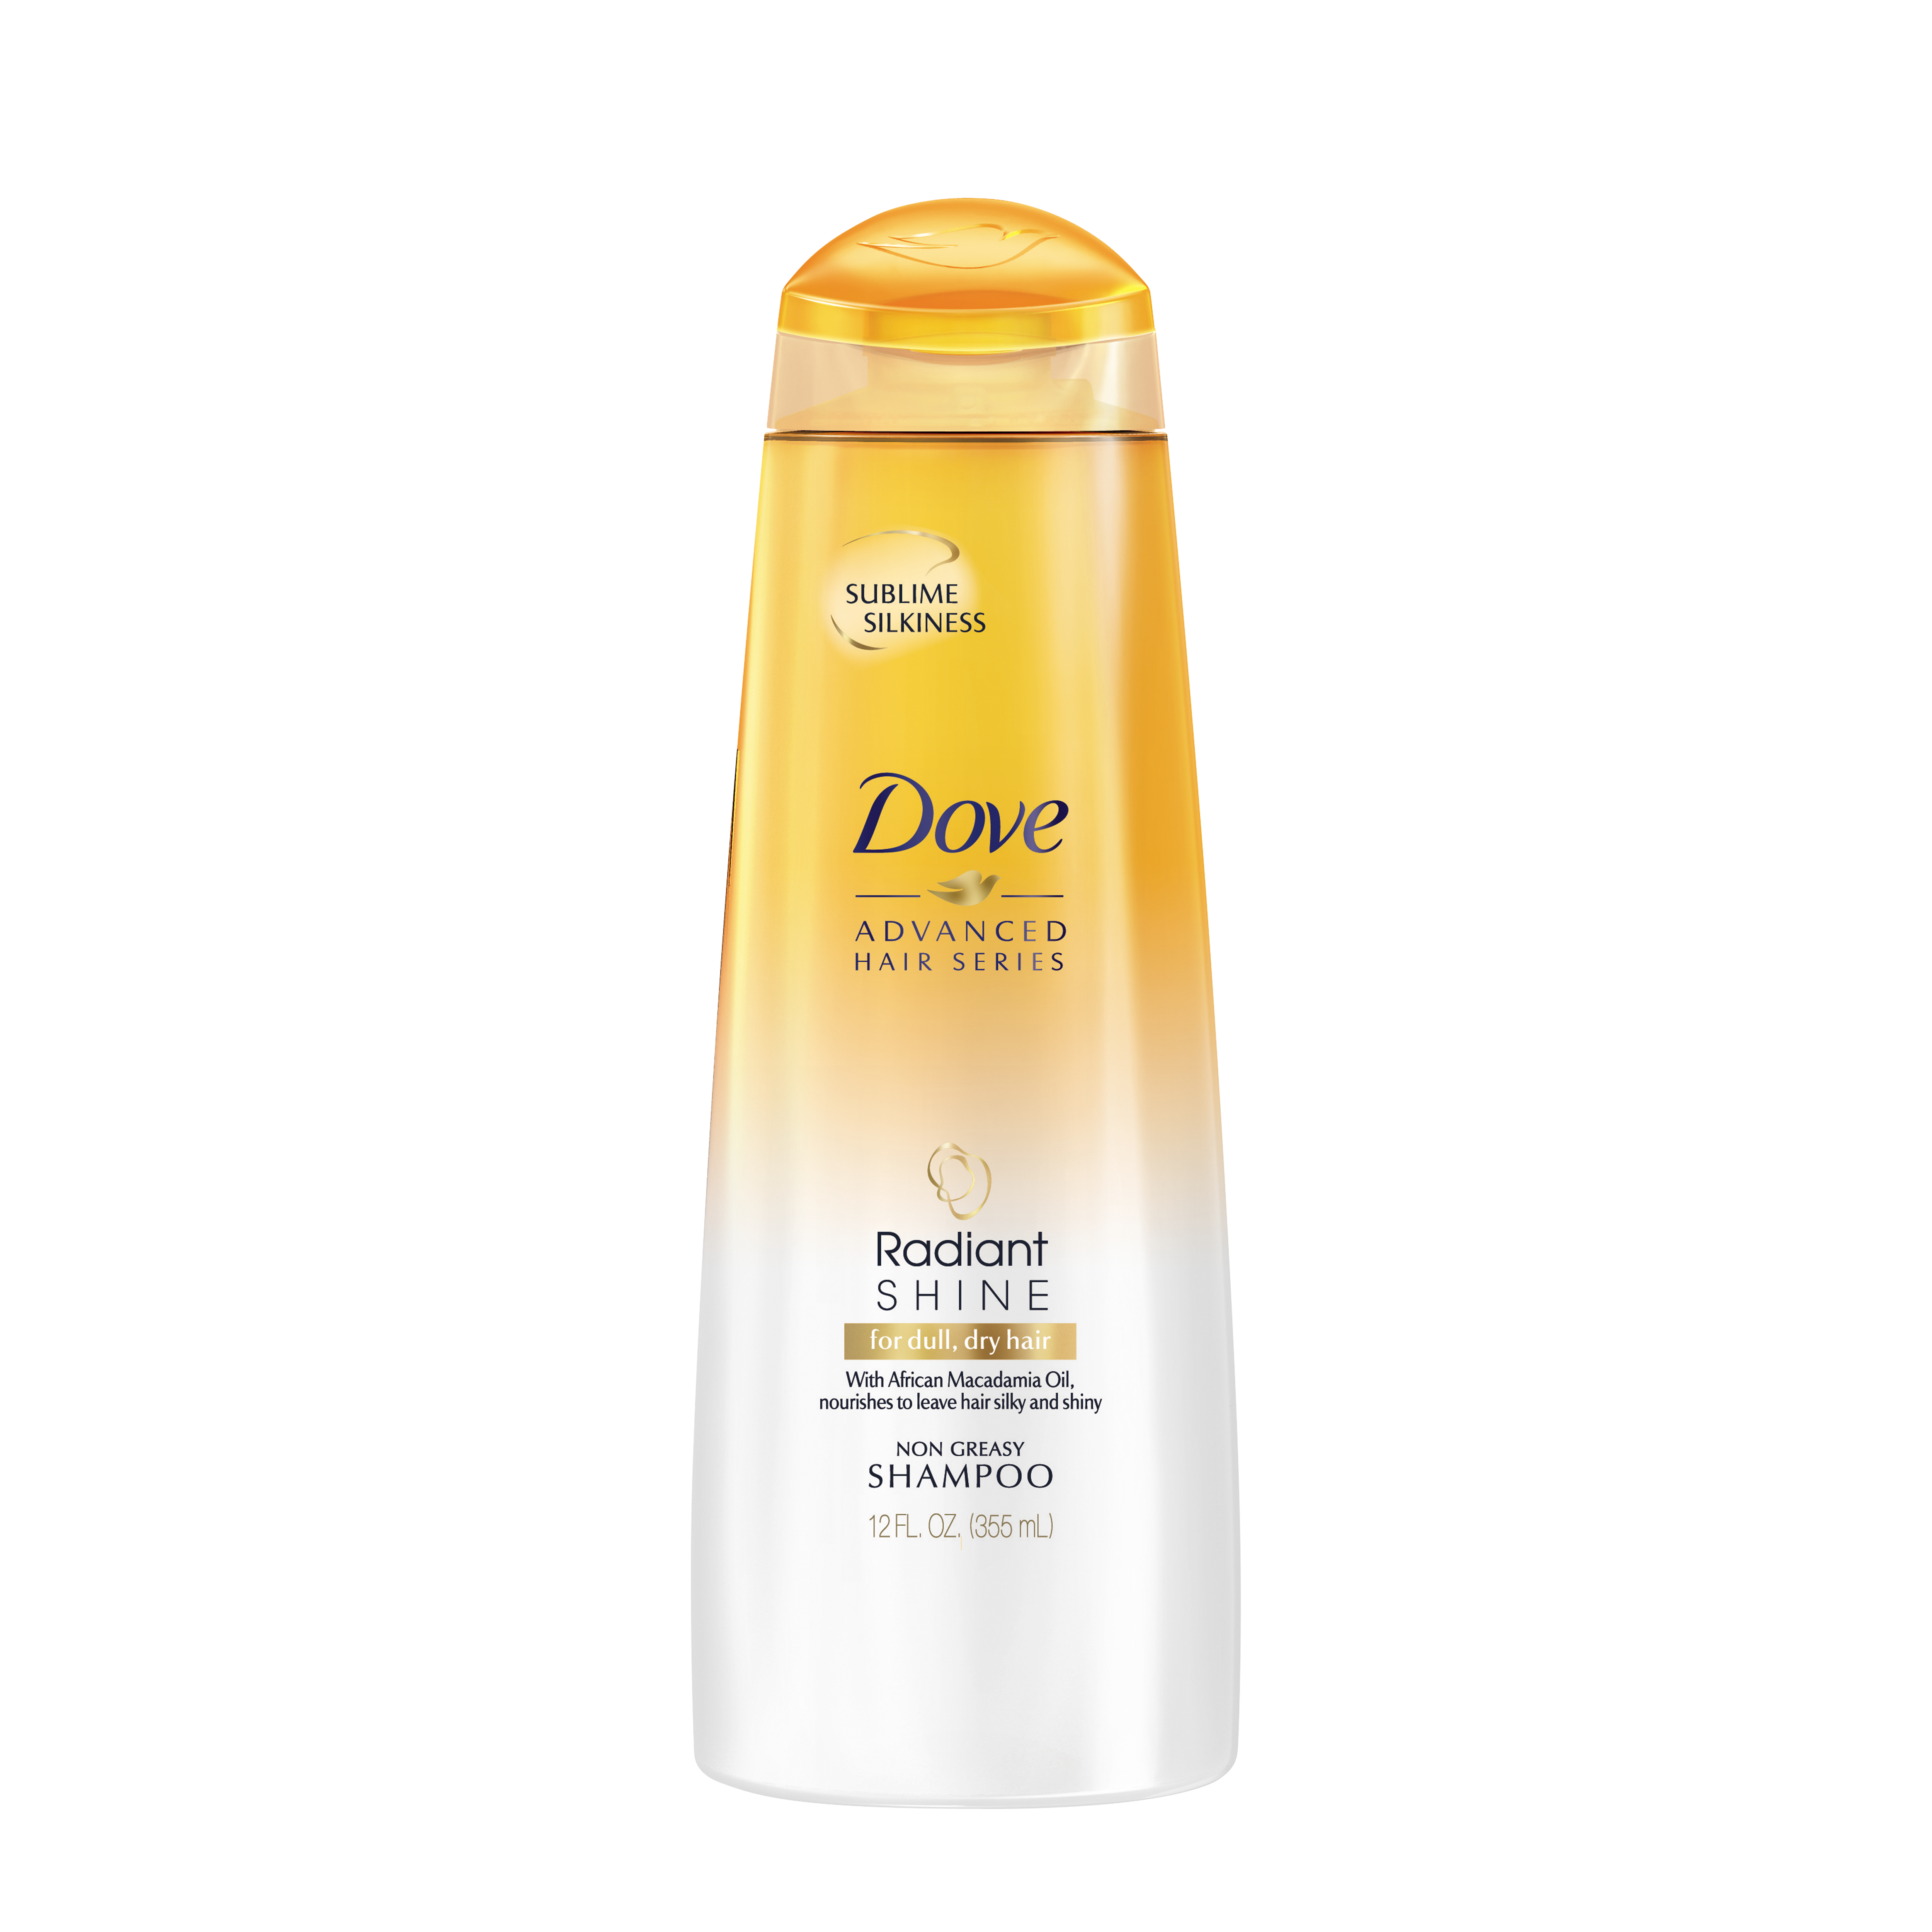 Dove Radiant Shine Shampoo